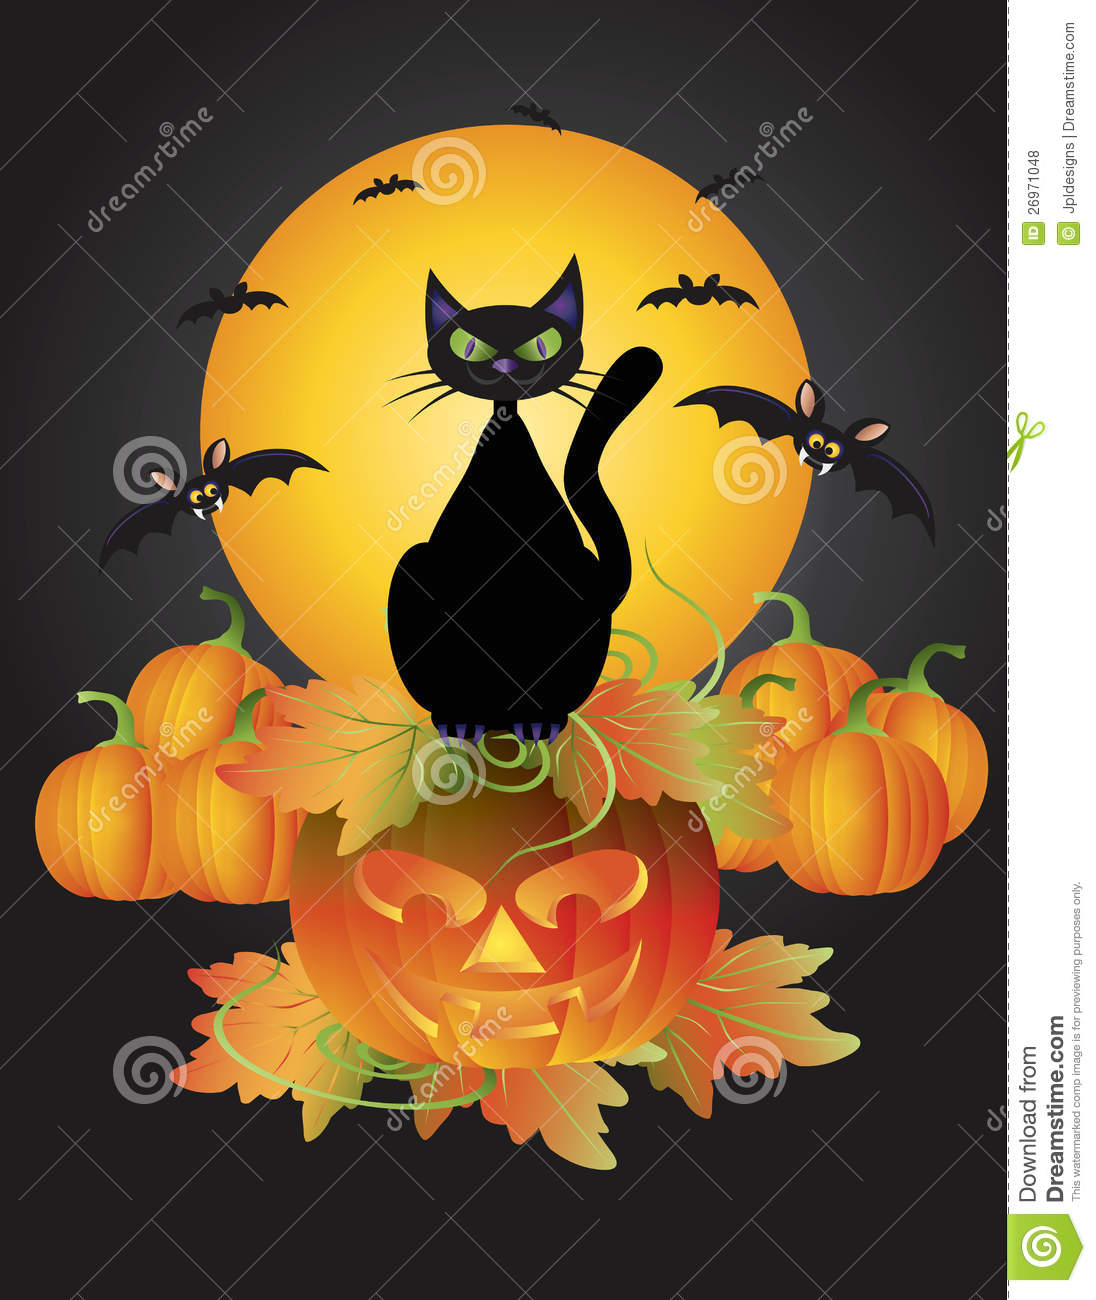 Halloween Black Cat On Carved Pumpkin Illustration Stock Vector    Illustration Of O, Jack: 26971048